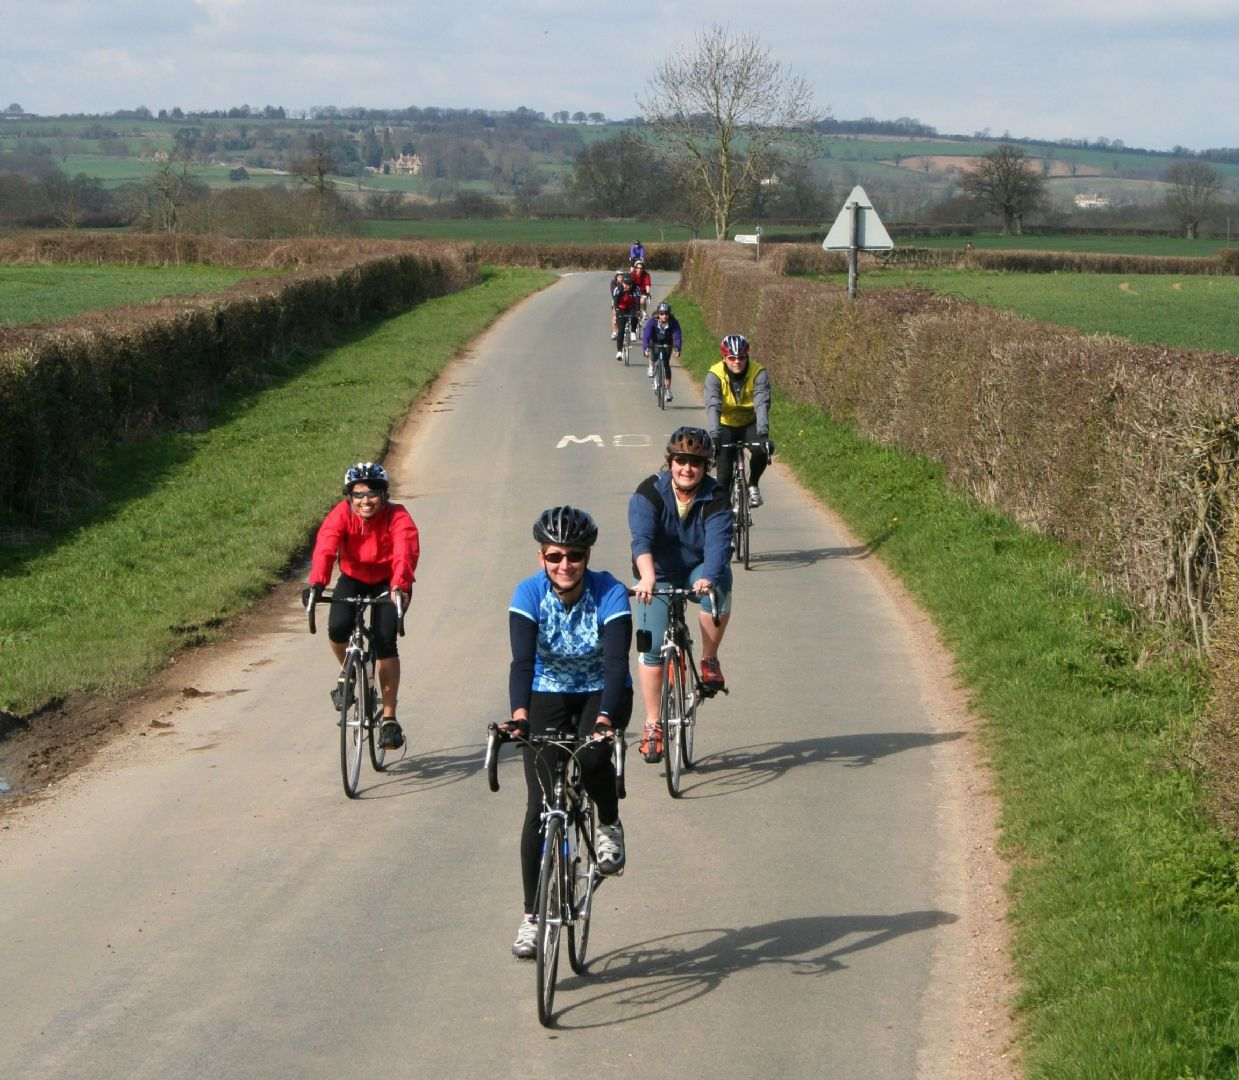 Chilterns Road Cycling Weekend 13.JPG - UK - Chilterns - Guided Road Cycling Weekend - Road Cycling